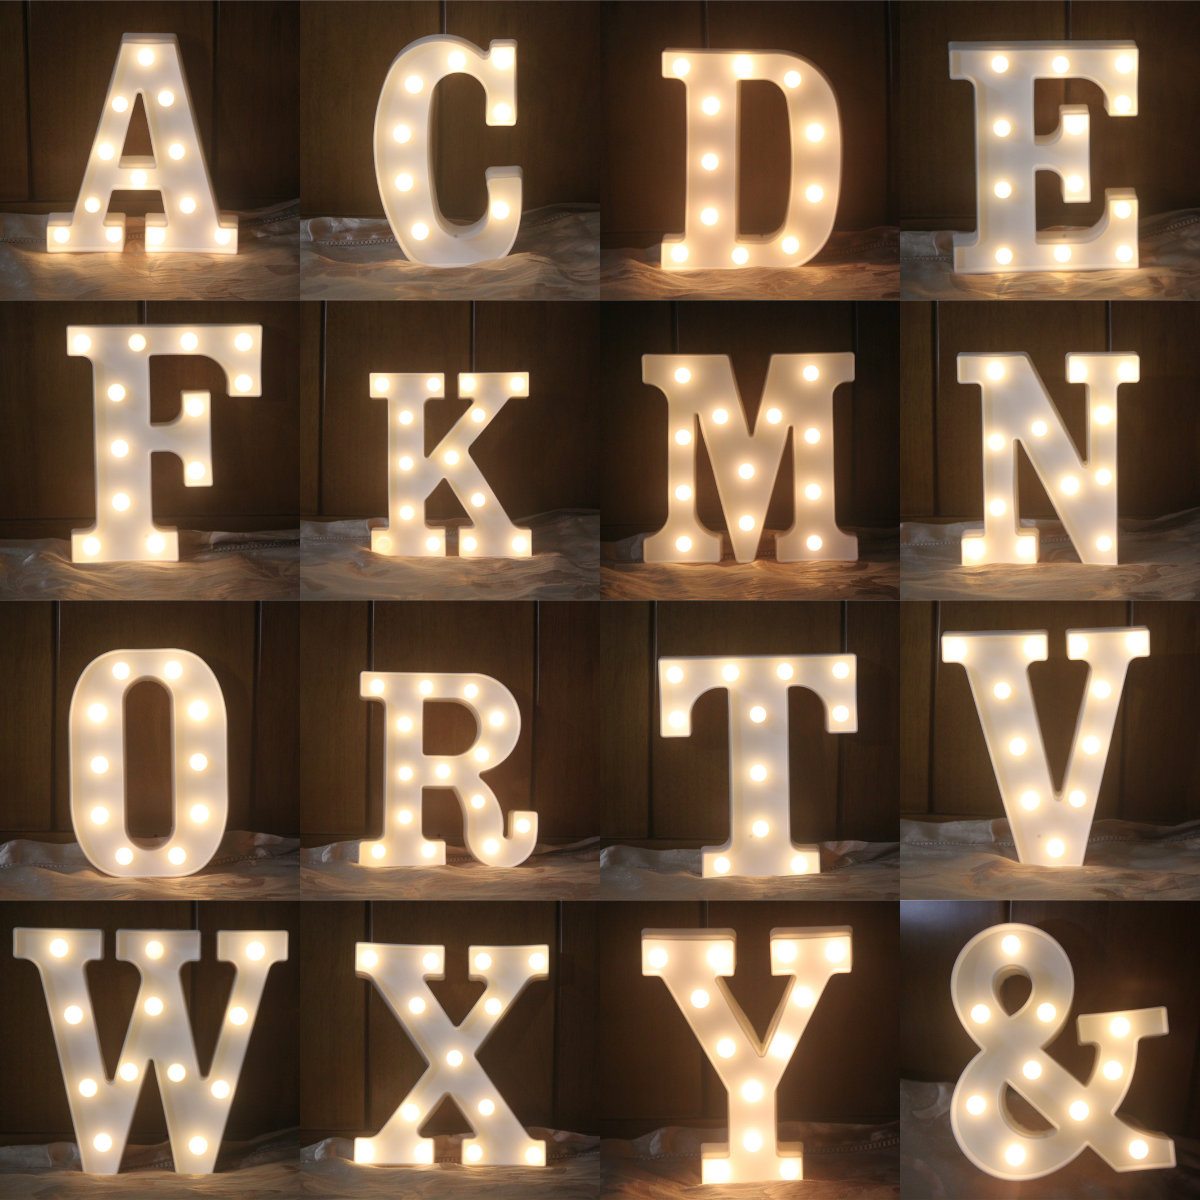 3D 26 Letters LED Night Light Warm White Wall Hanging Neon Christmas Fairy Lights Ourdoor Party Birthday Decoration Desk Lamp ropio love letters shape led night lights table lamp wall hanging neon light for festival wedding party decoration lighting